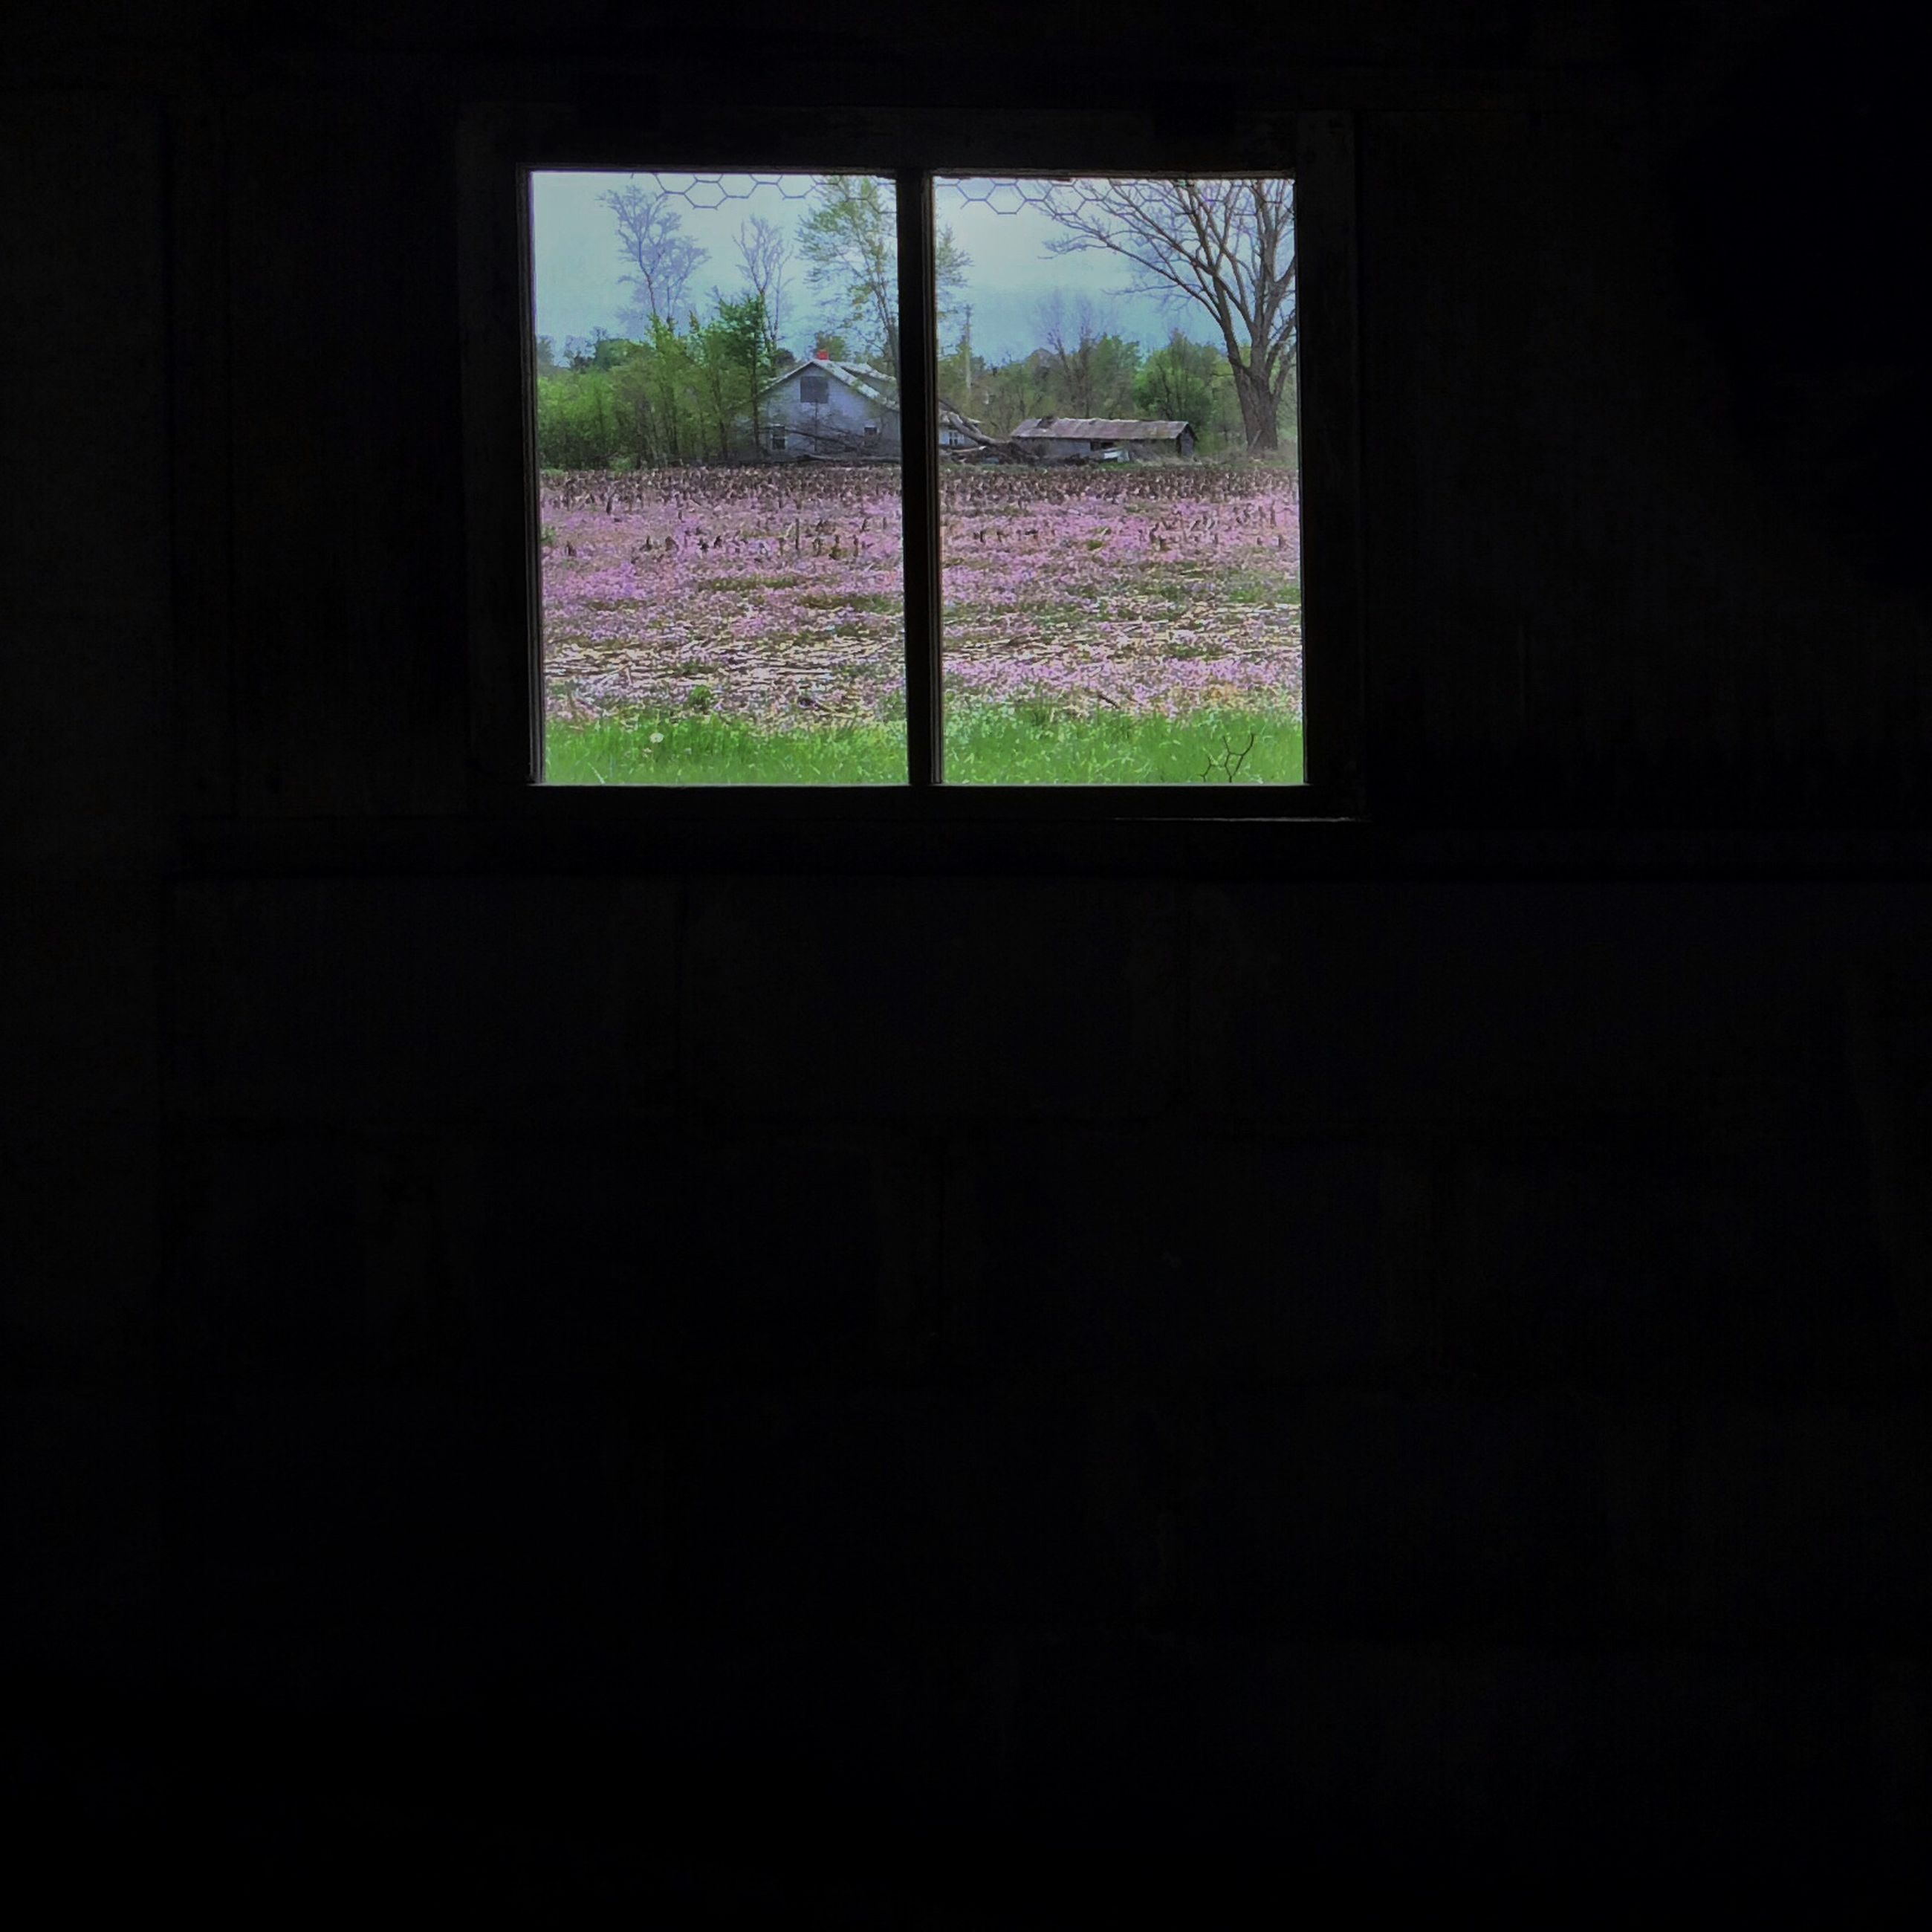 window, indoors, glass - material, transparent, architecture, built structure, house, tree, dark, no people, home interior, day, building exterior, looking through window, glass, residential structure, wall - building feature, sunlight, door, open